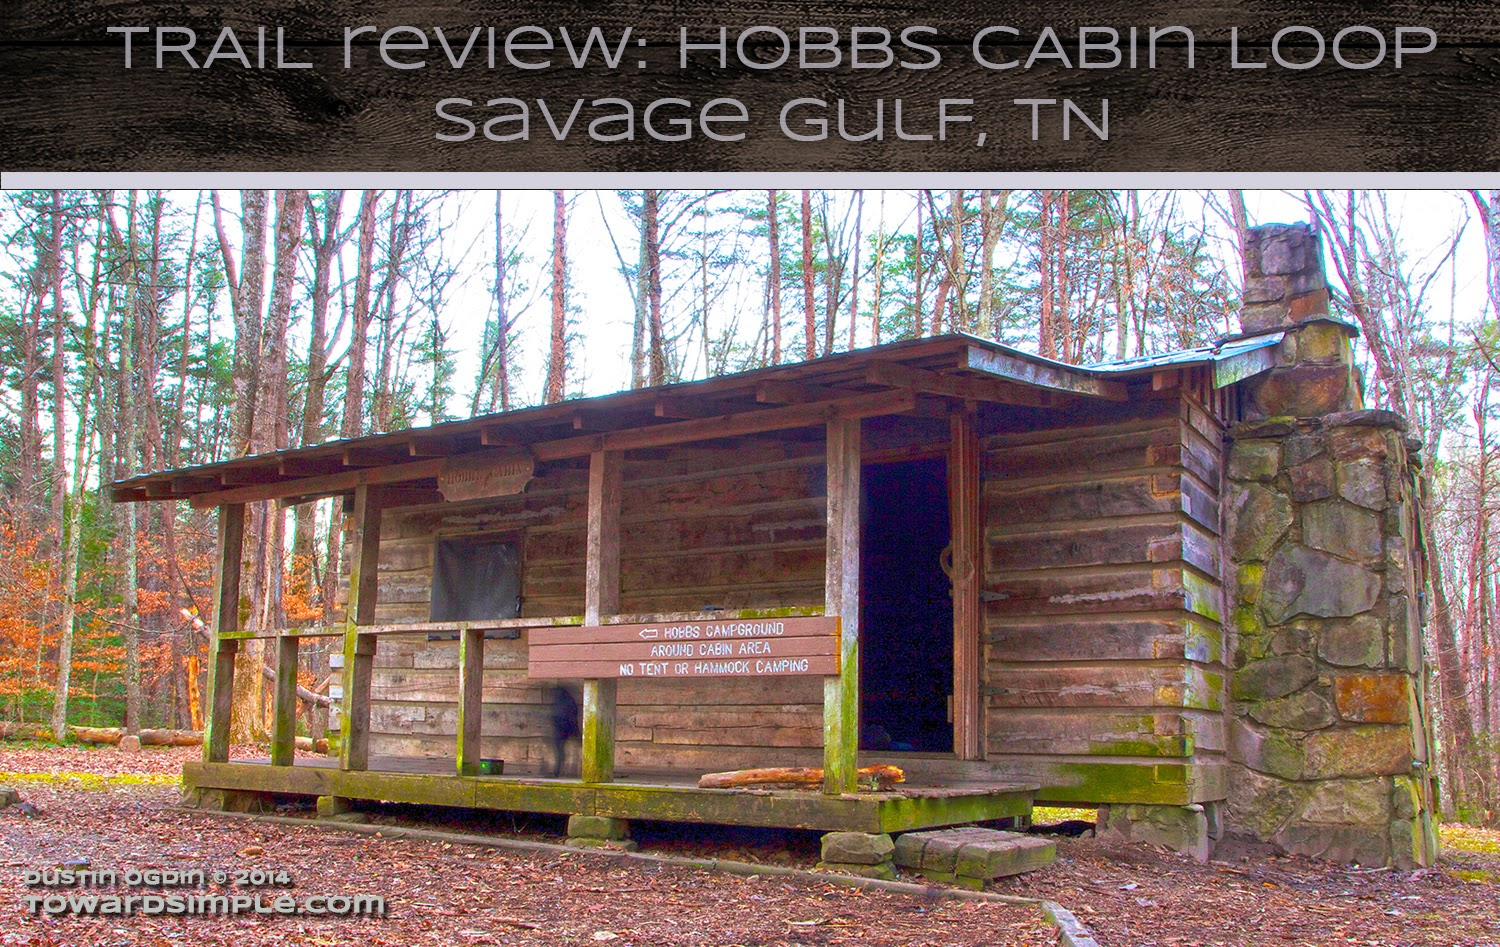 Hobbs Cabin Graphic, Savage Gulf, TN